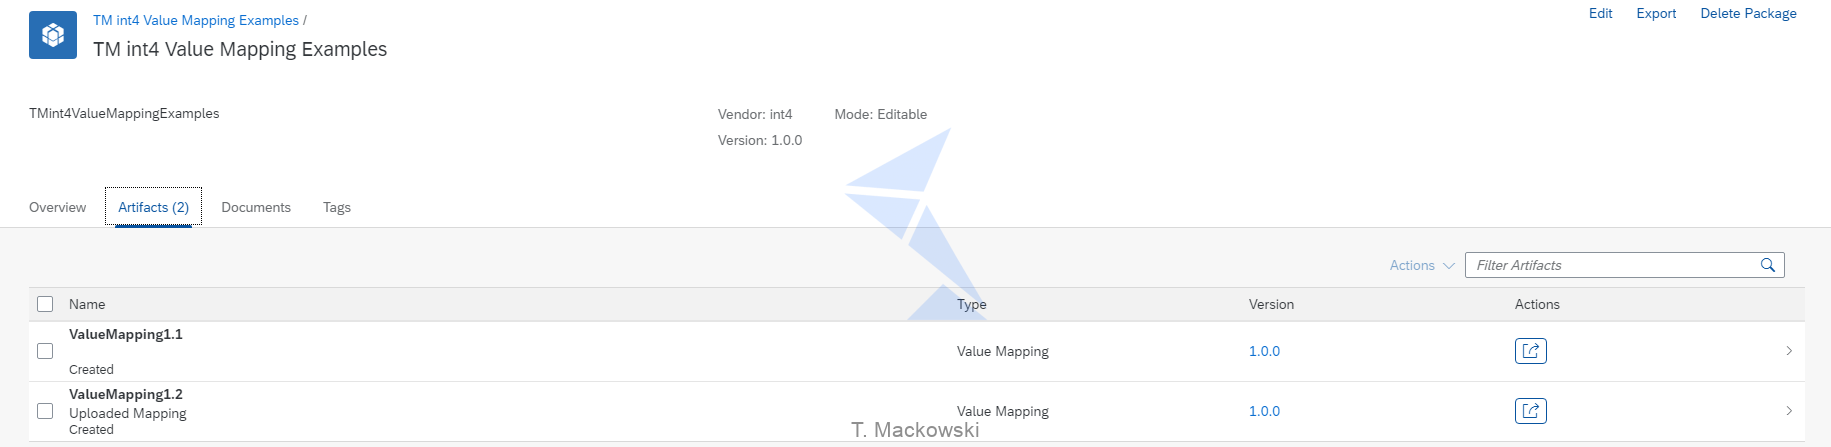 Int4 Value Mapping Examples 2